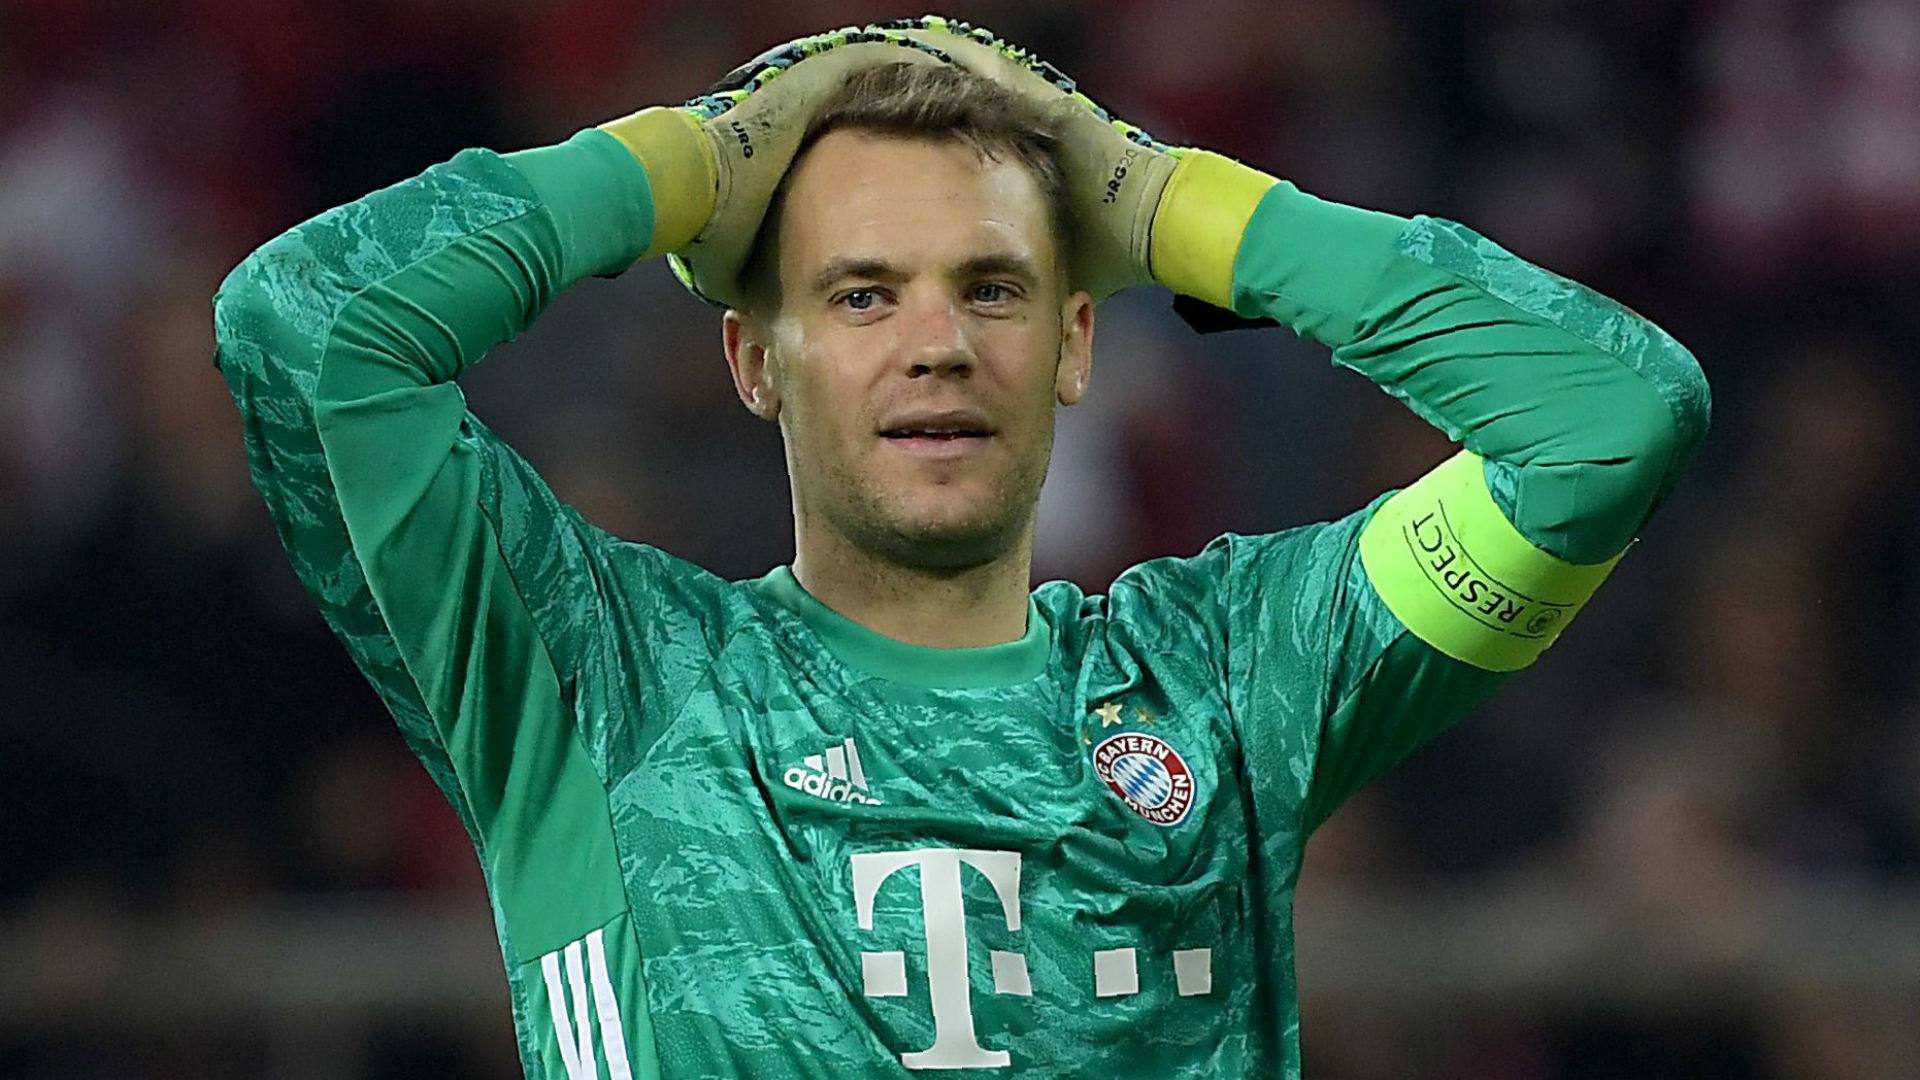 Bayern Munich beat Olympiacos in the Champions League but they must tighten up defensively, according to goalkeeper Manuel Neuer.